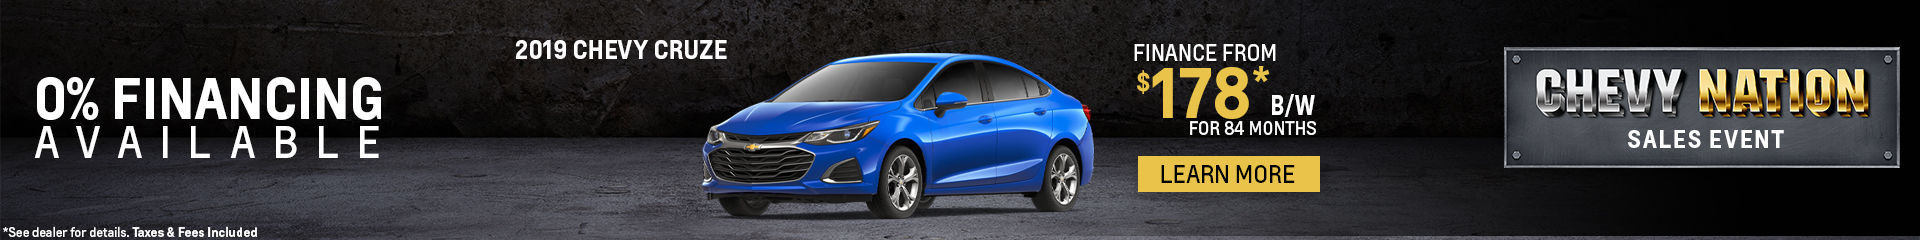 Finance the 2019 Chevy Cruze